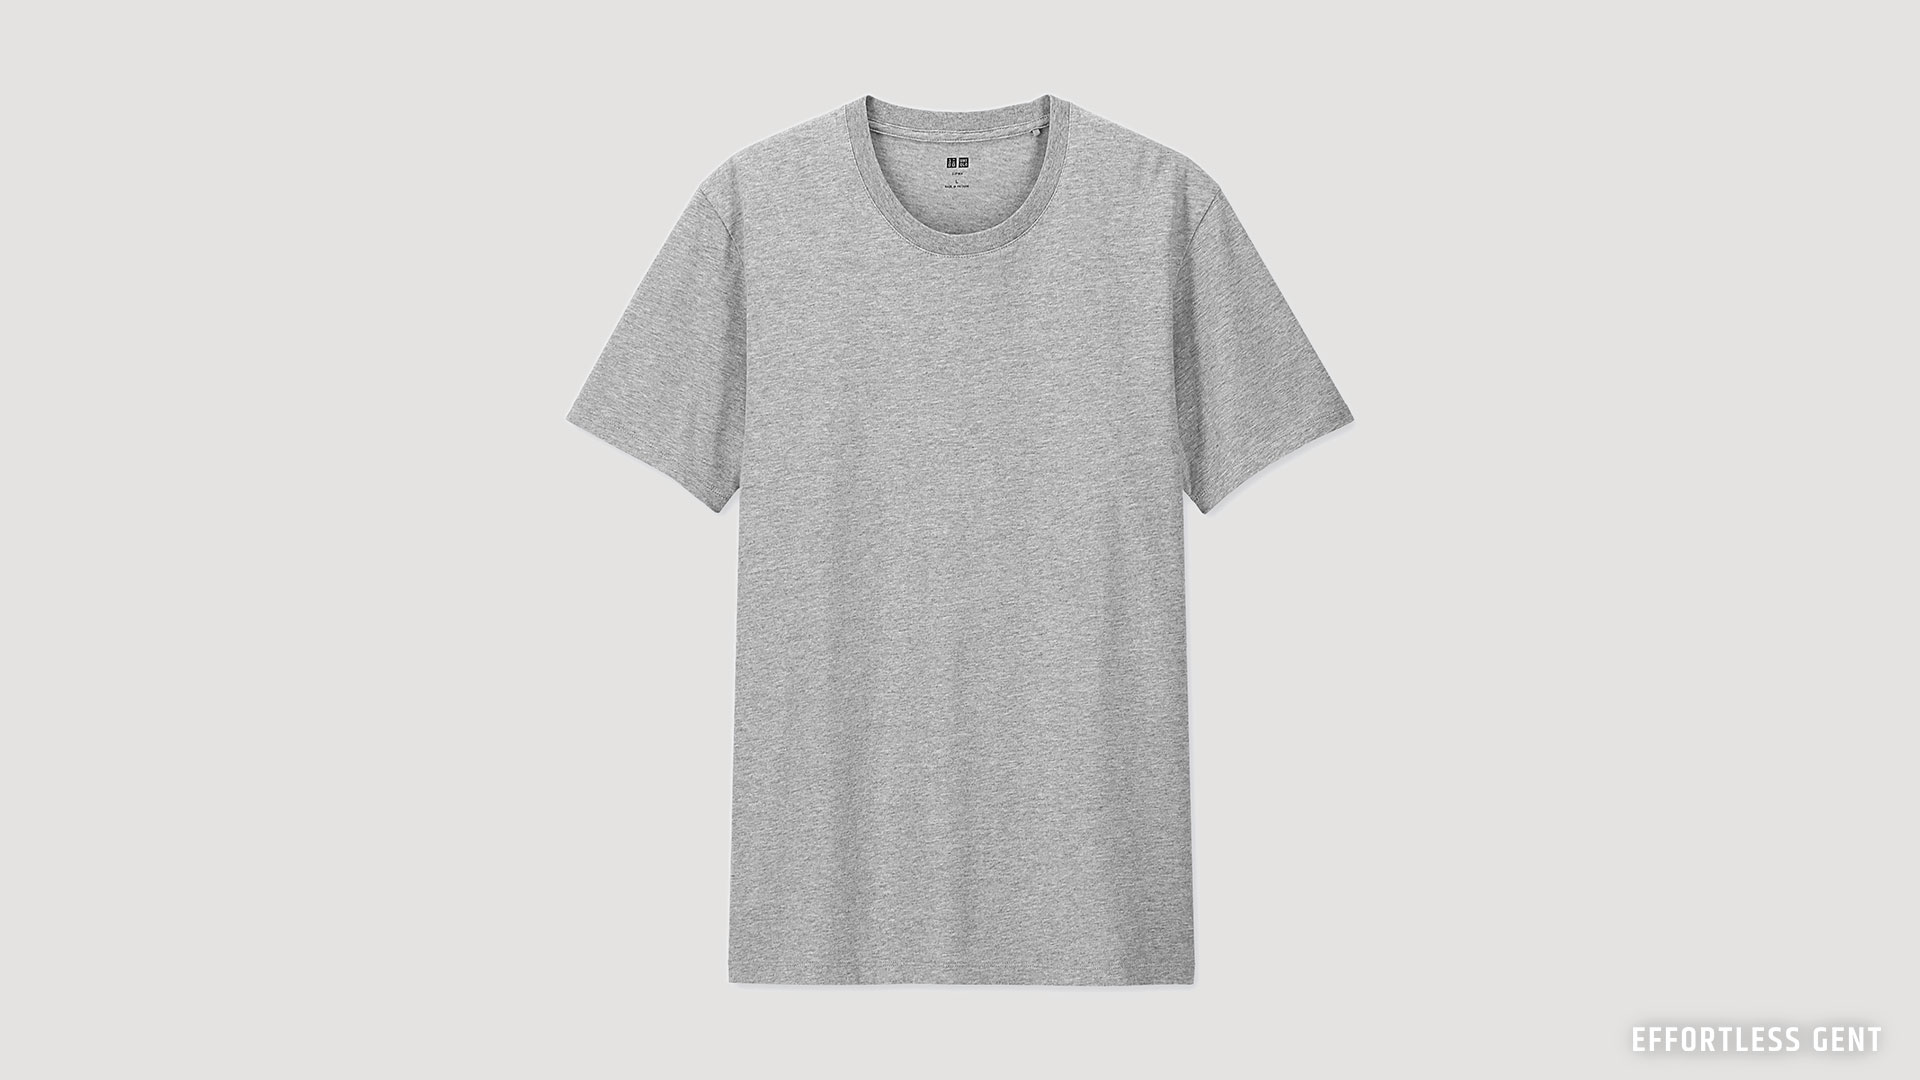 the perfect gray t-shirt for a budget minimal lean wardrobe